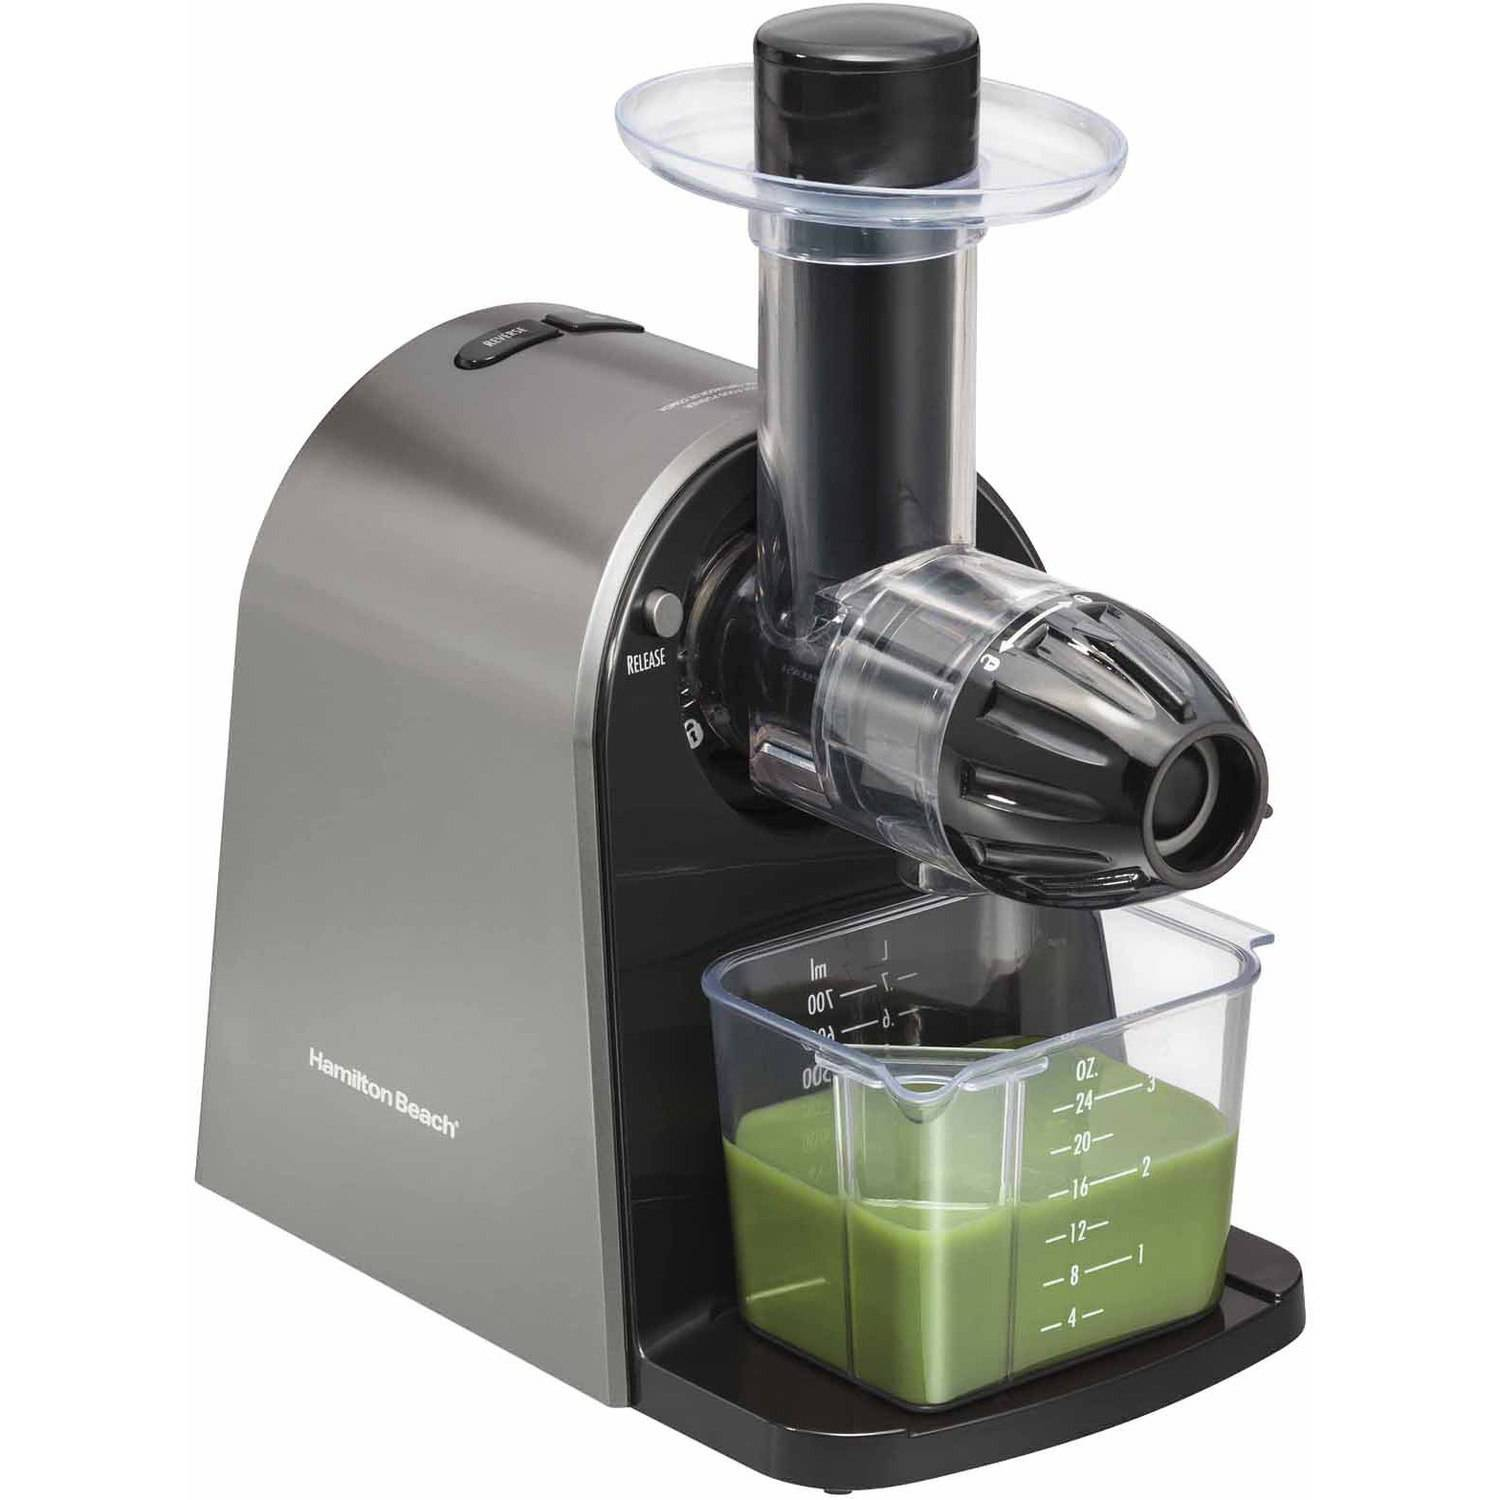 Best Brand For Slow Juicer : Cold Press Juicer Machine - Masticating Juicer Slow Juice ...